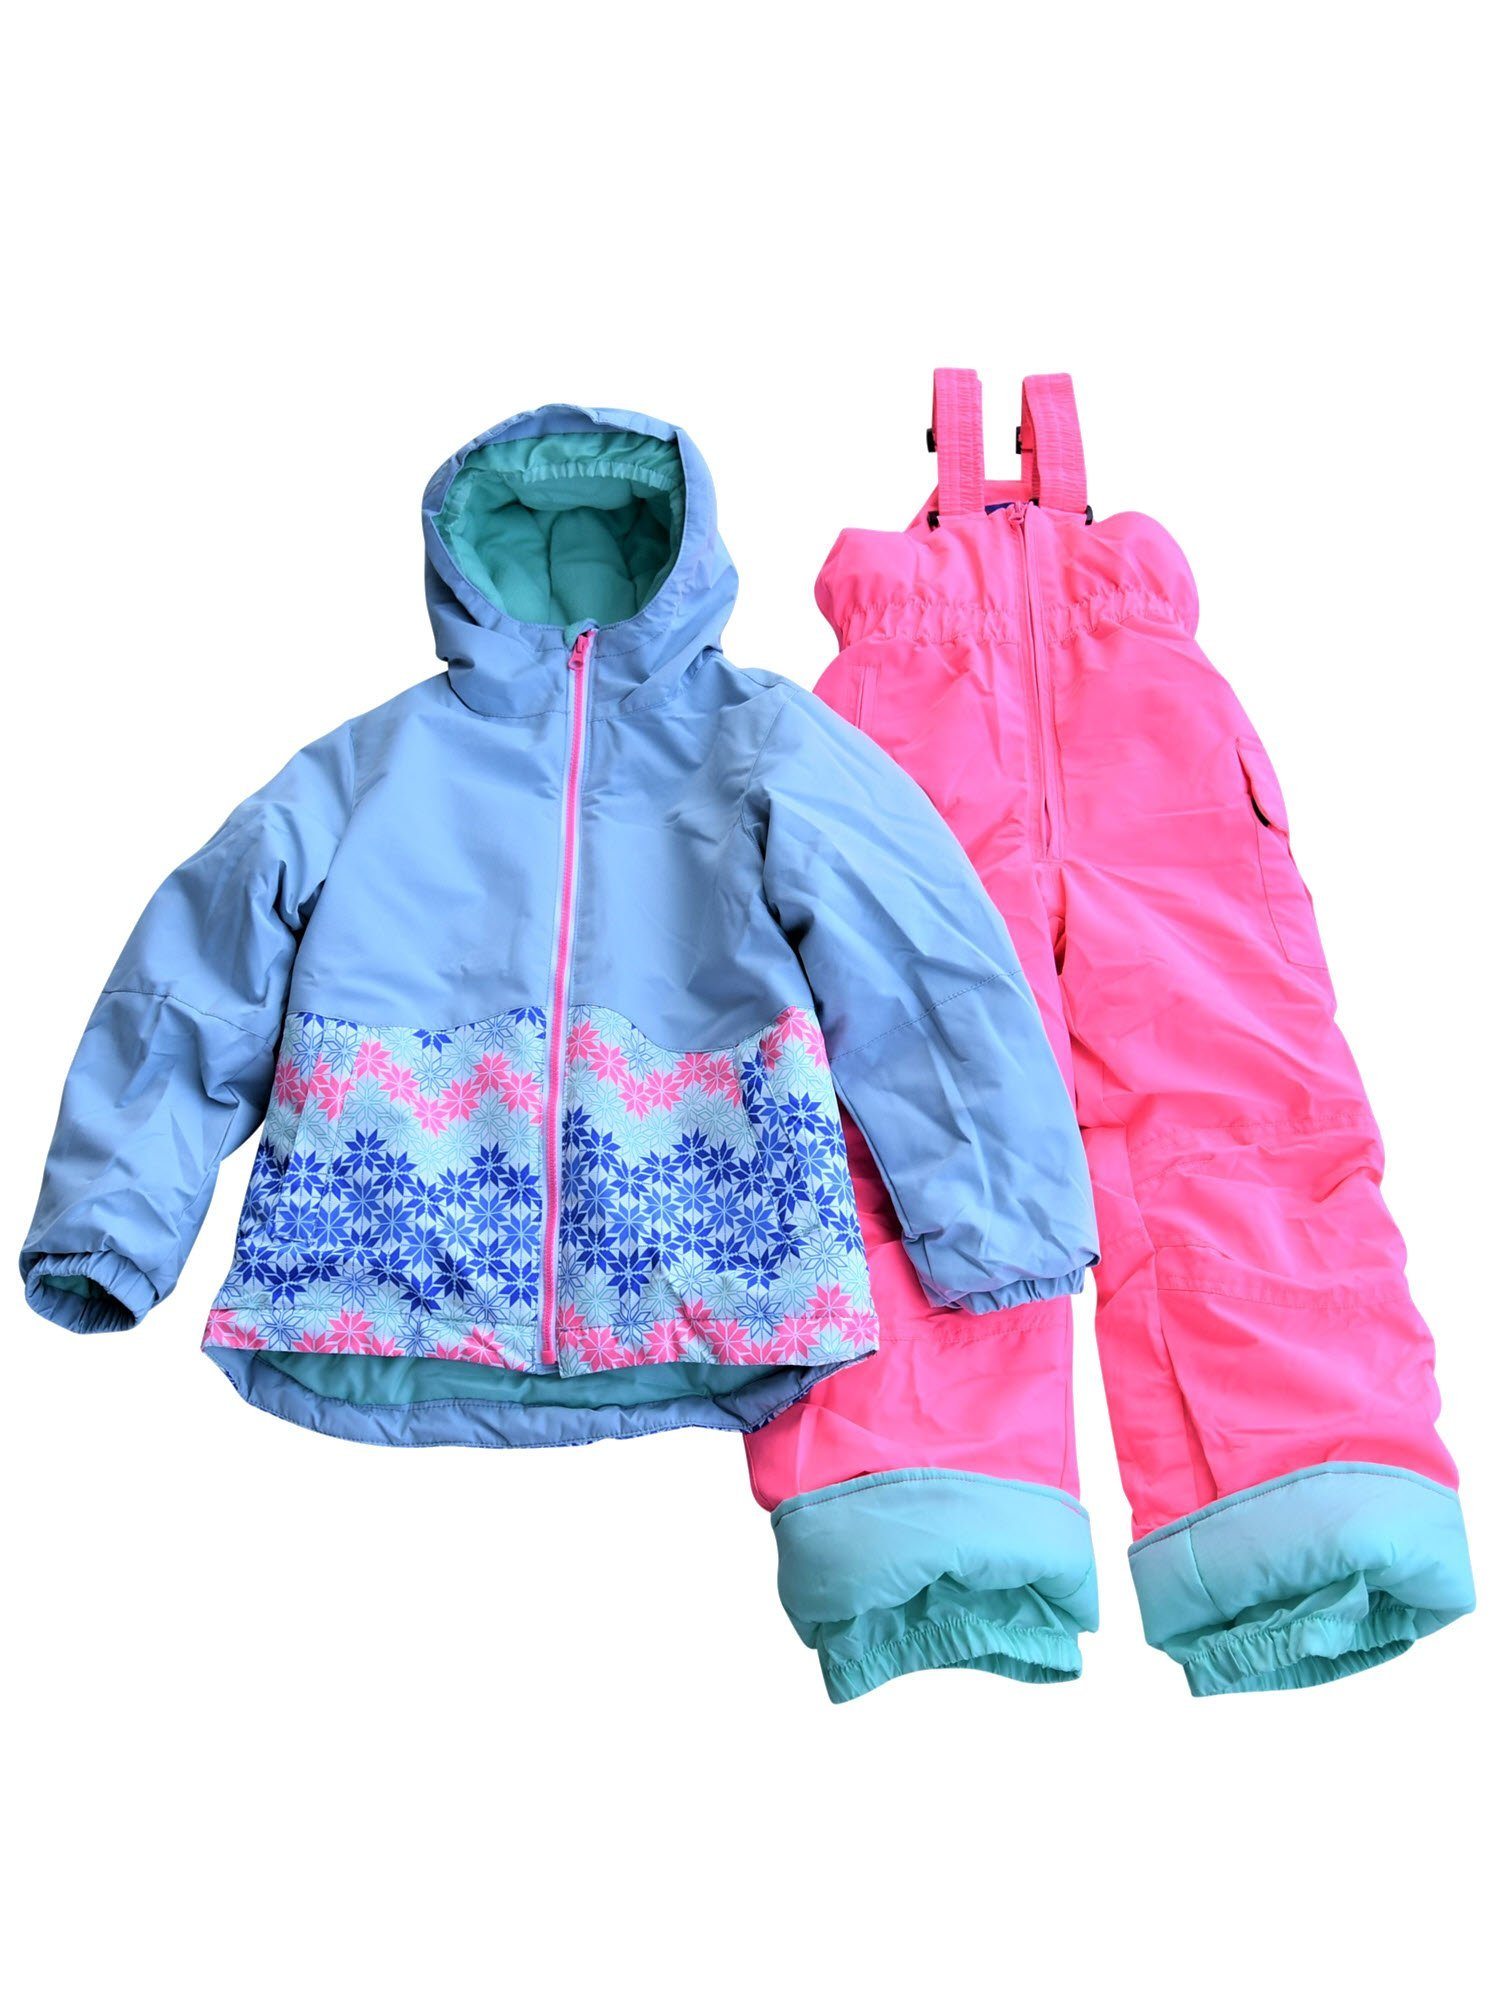 Snow Country Outerwear Little Boys 1 Piece Insulated Ski Snowsuit Coveralls Set